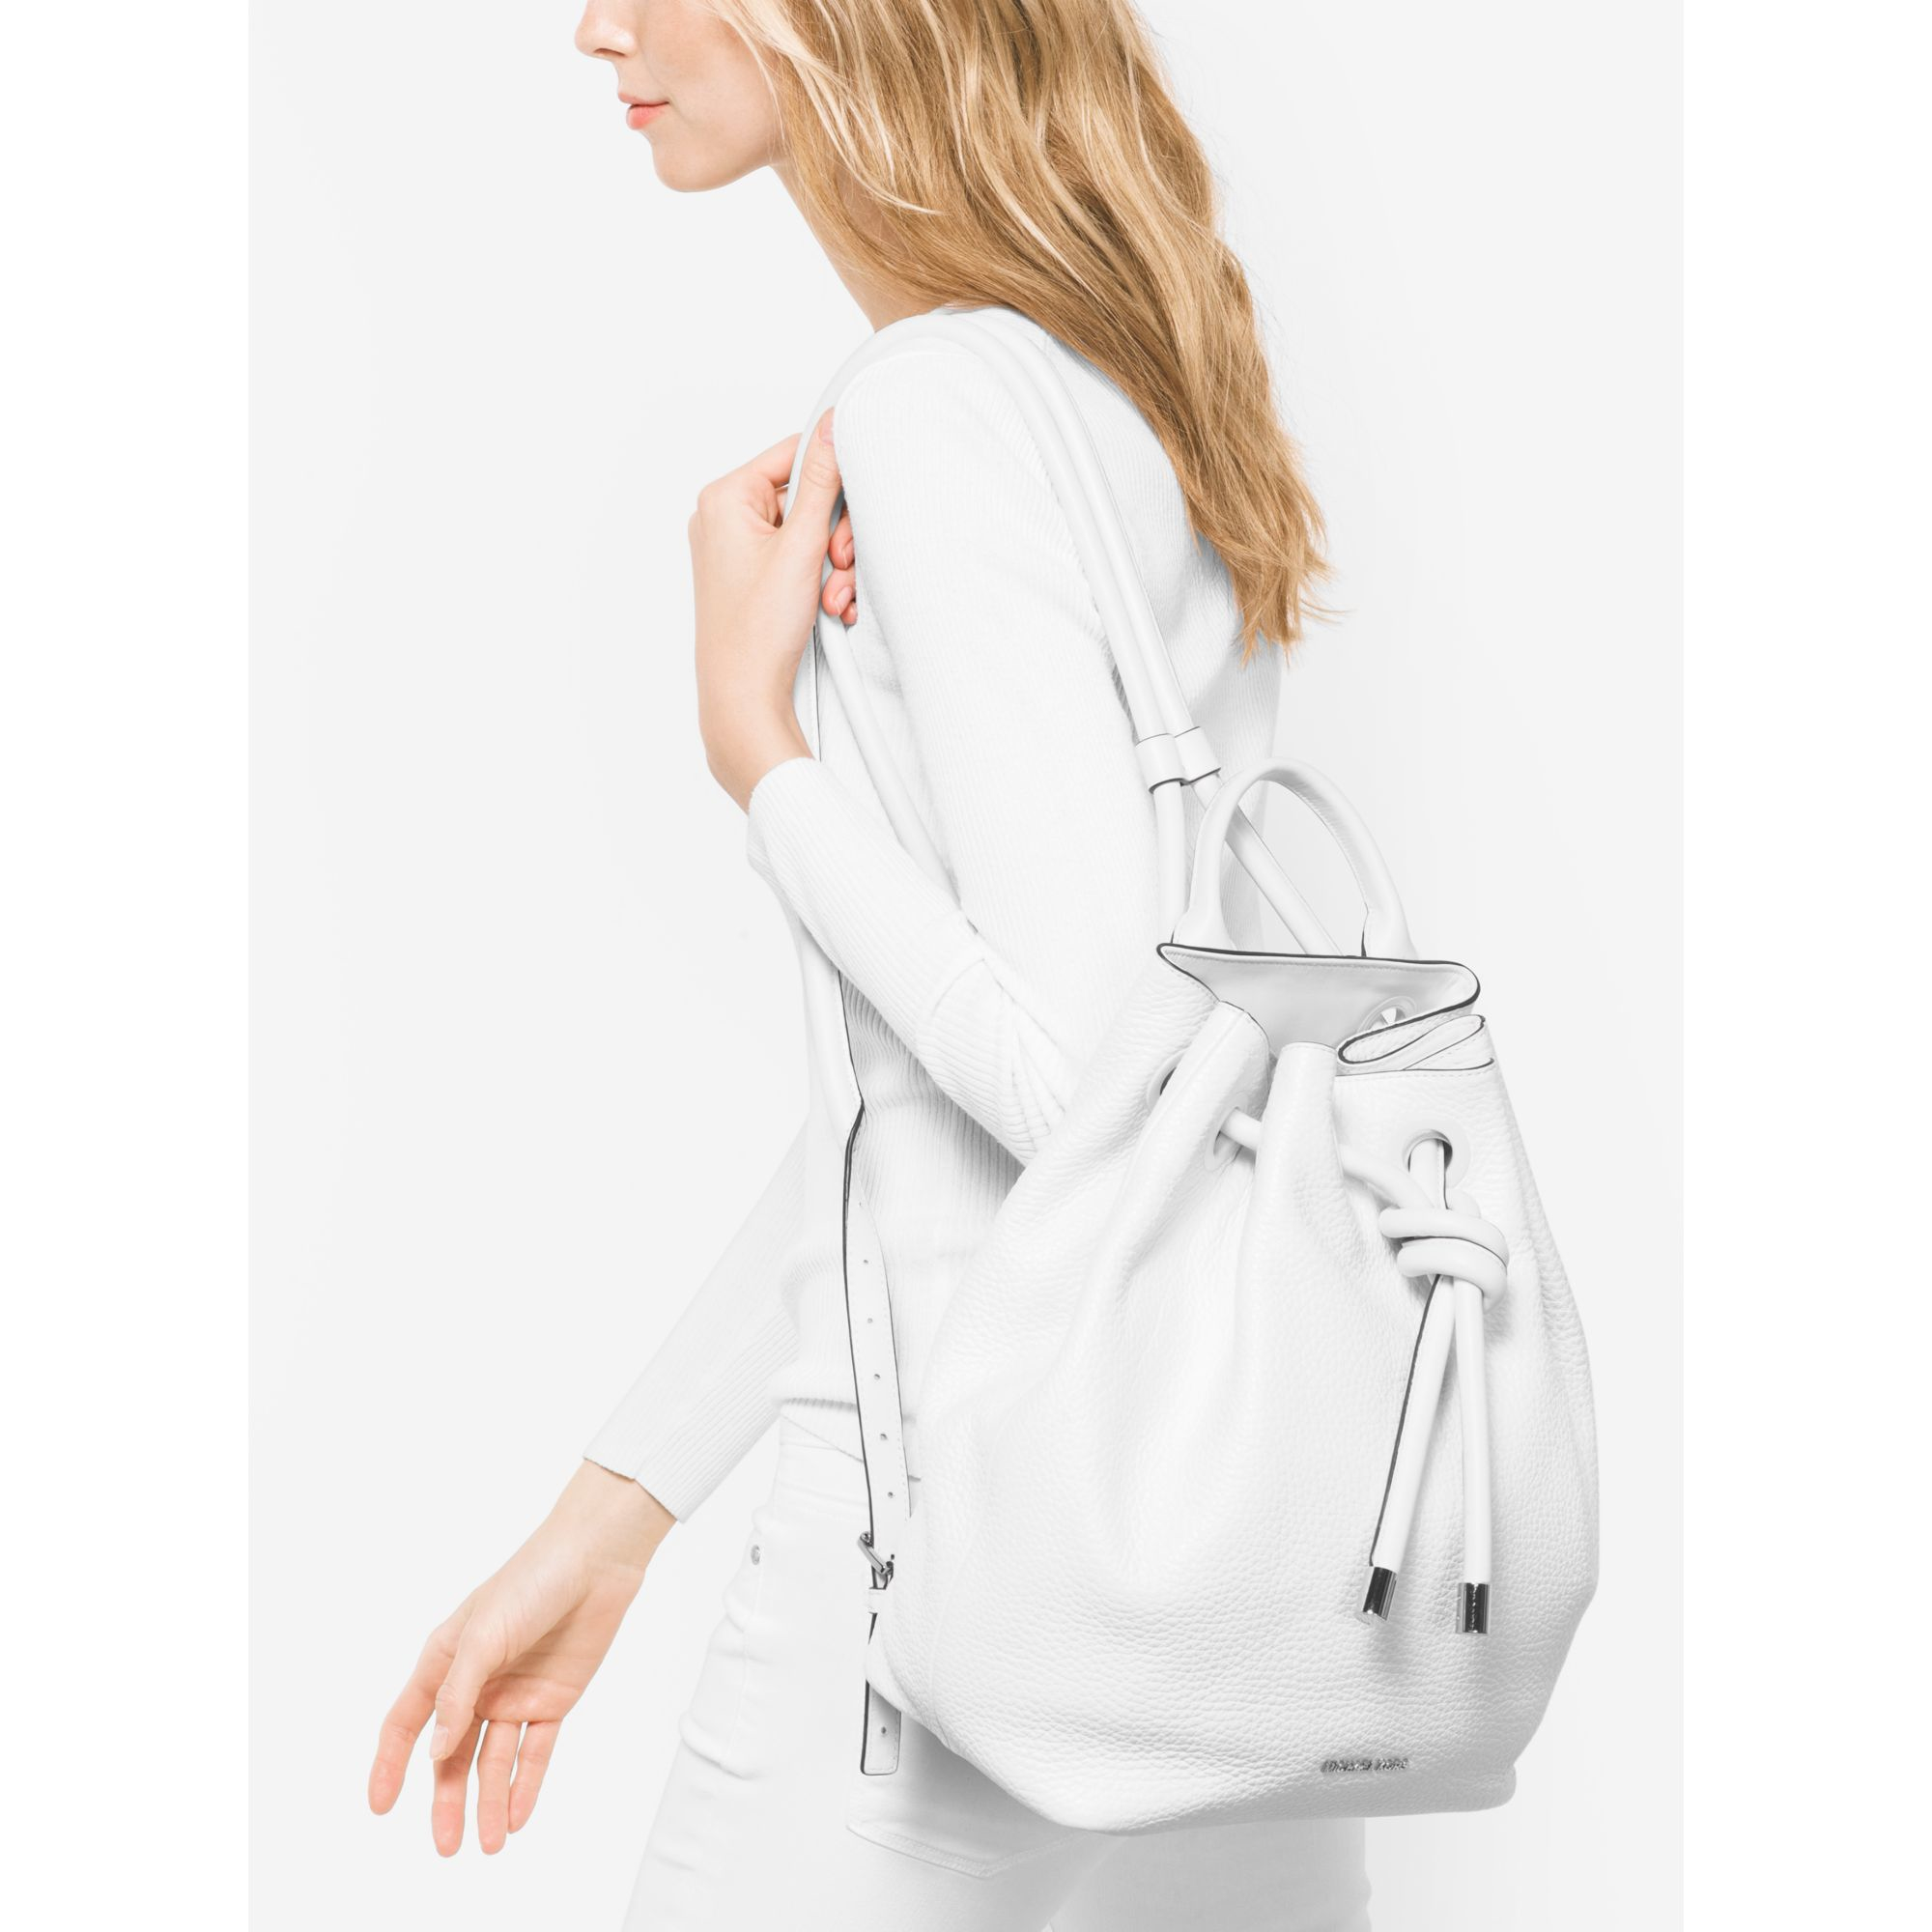 db074bfcf2e6 ... spain lyst michael kors dalia large leather backpack in white 07b87  3875d